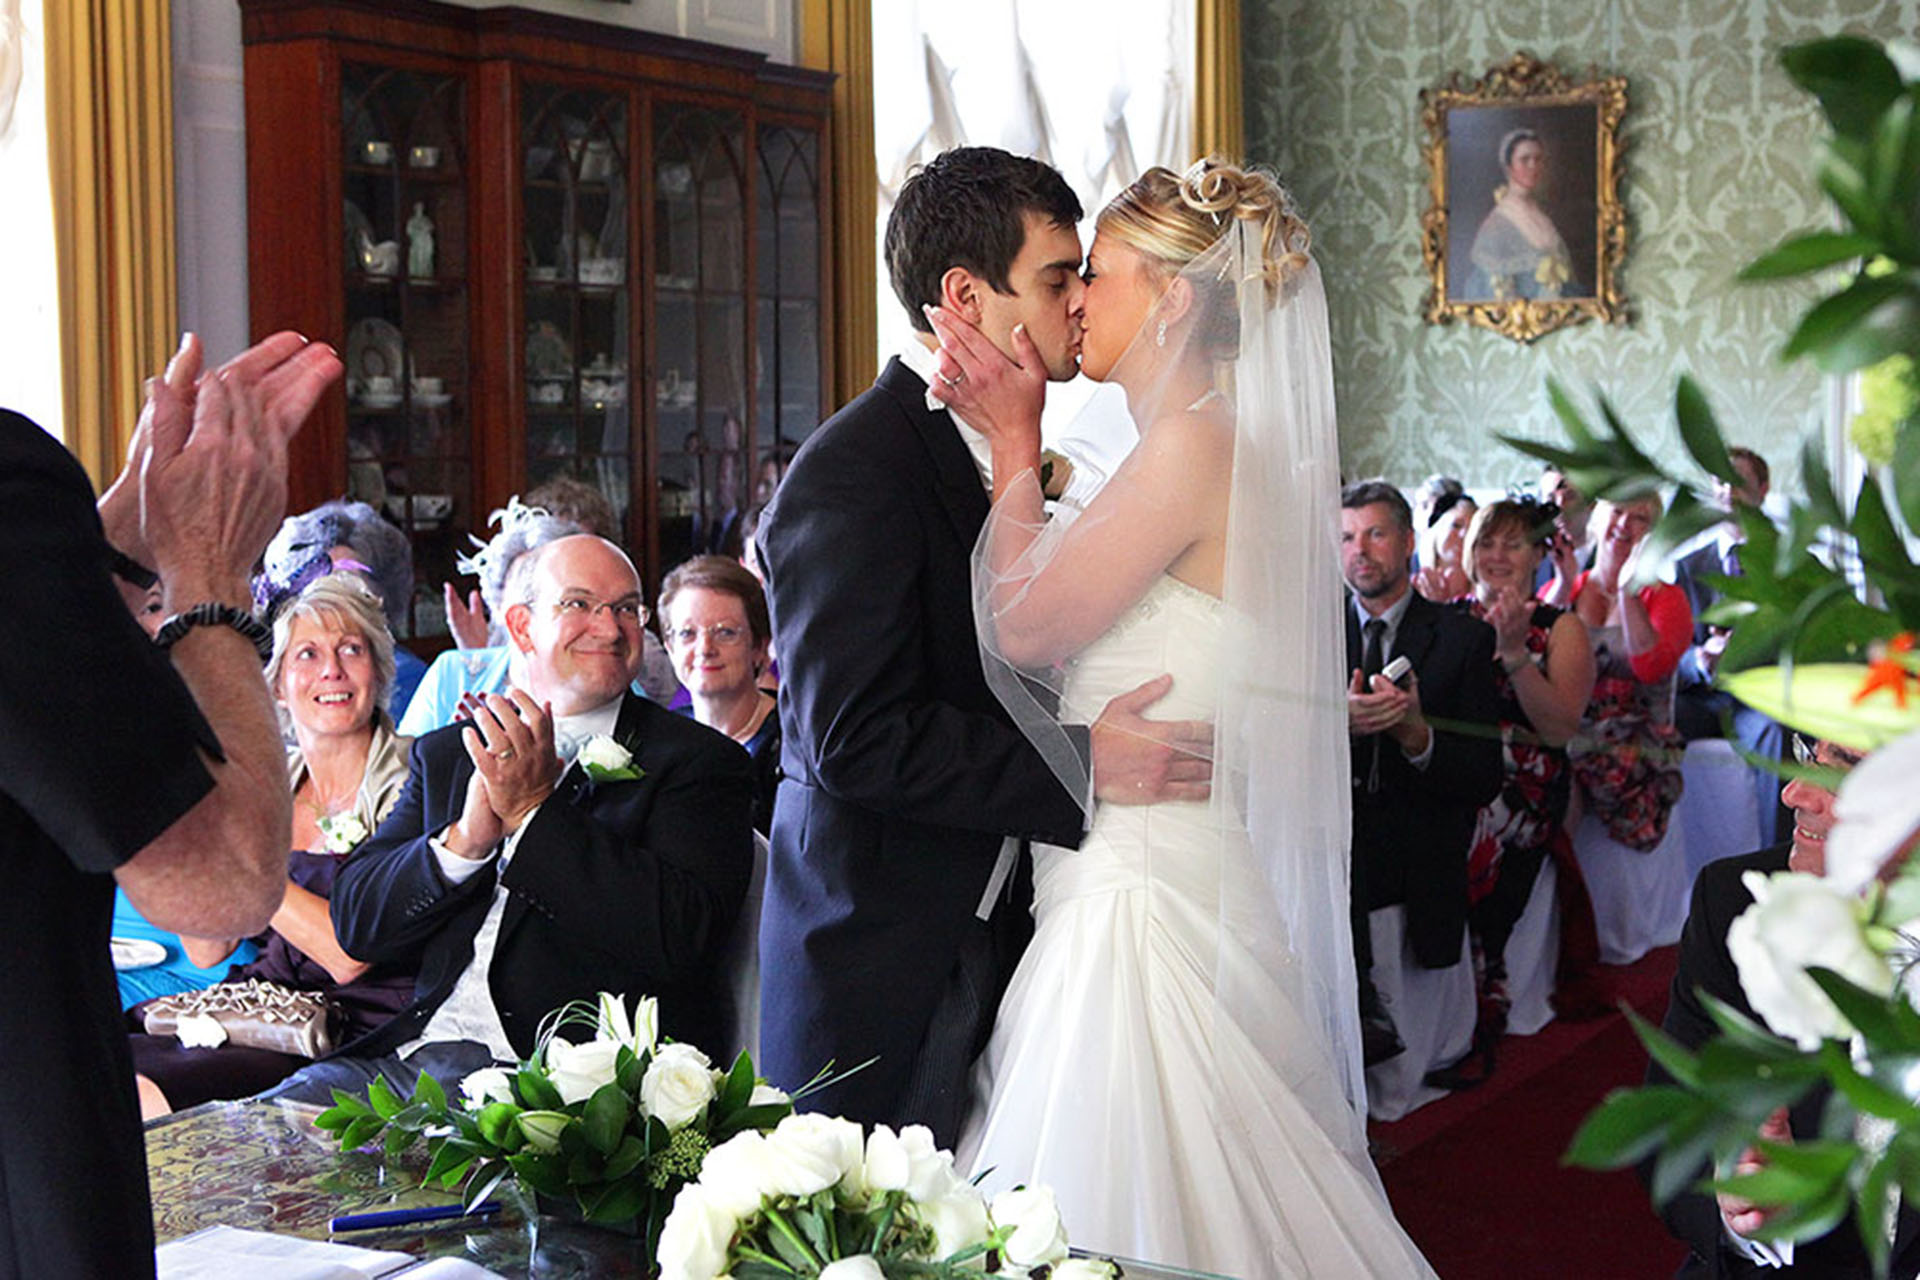 Bride and groom kissing during wedding ceremony